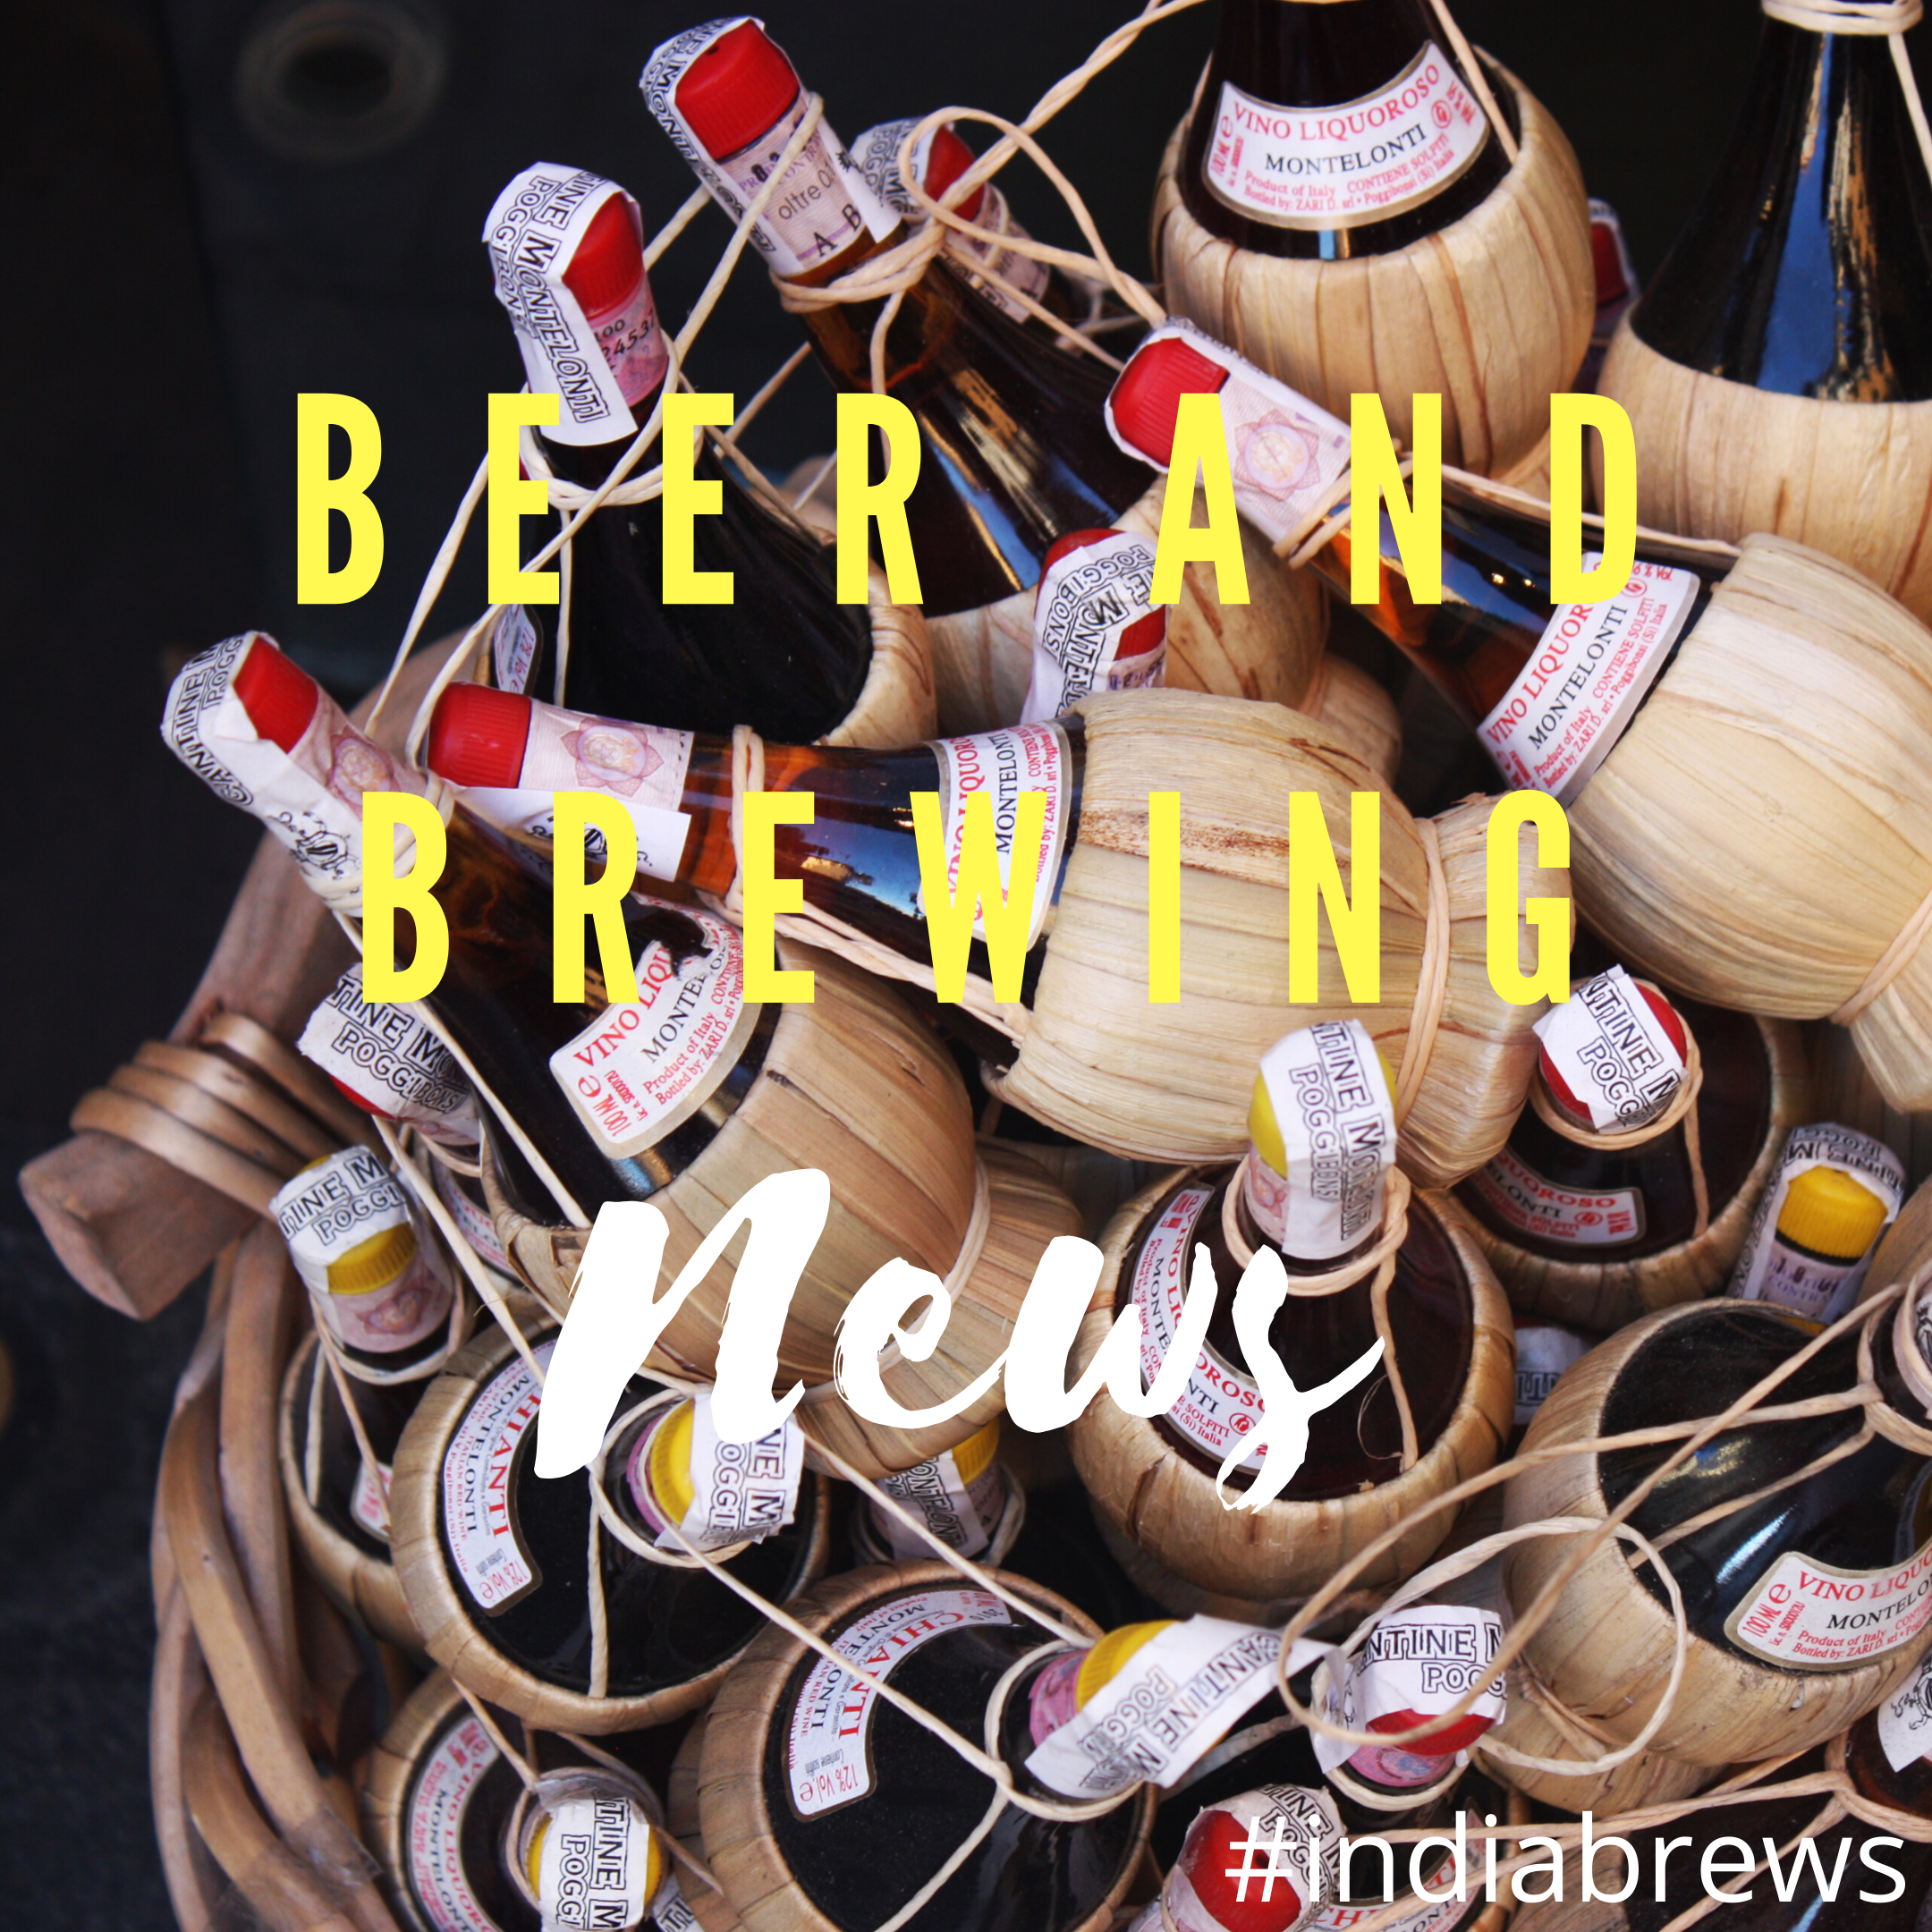 Pin on Beer and Brewing News